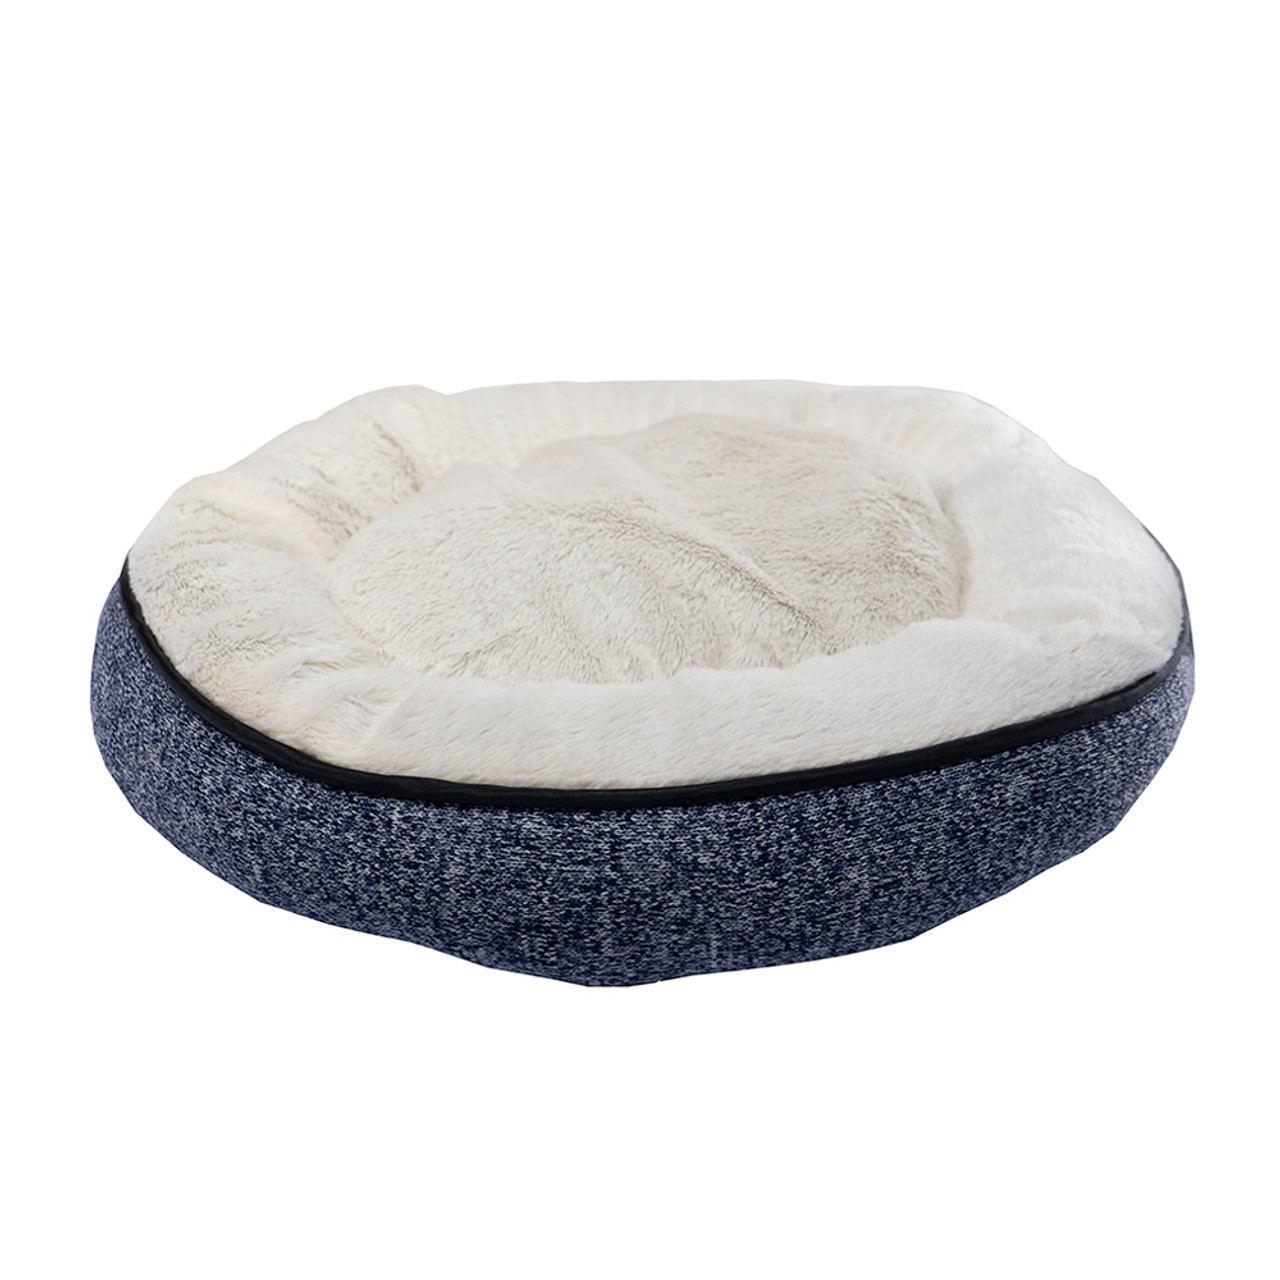 Pure Comfort Large Round Heathered Navy Knit Pet Bed